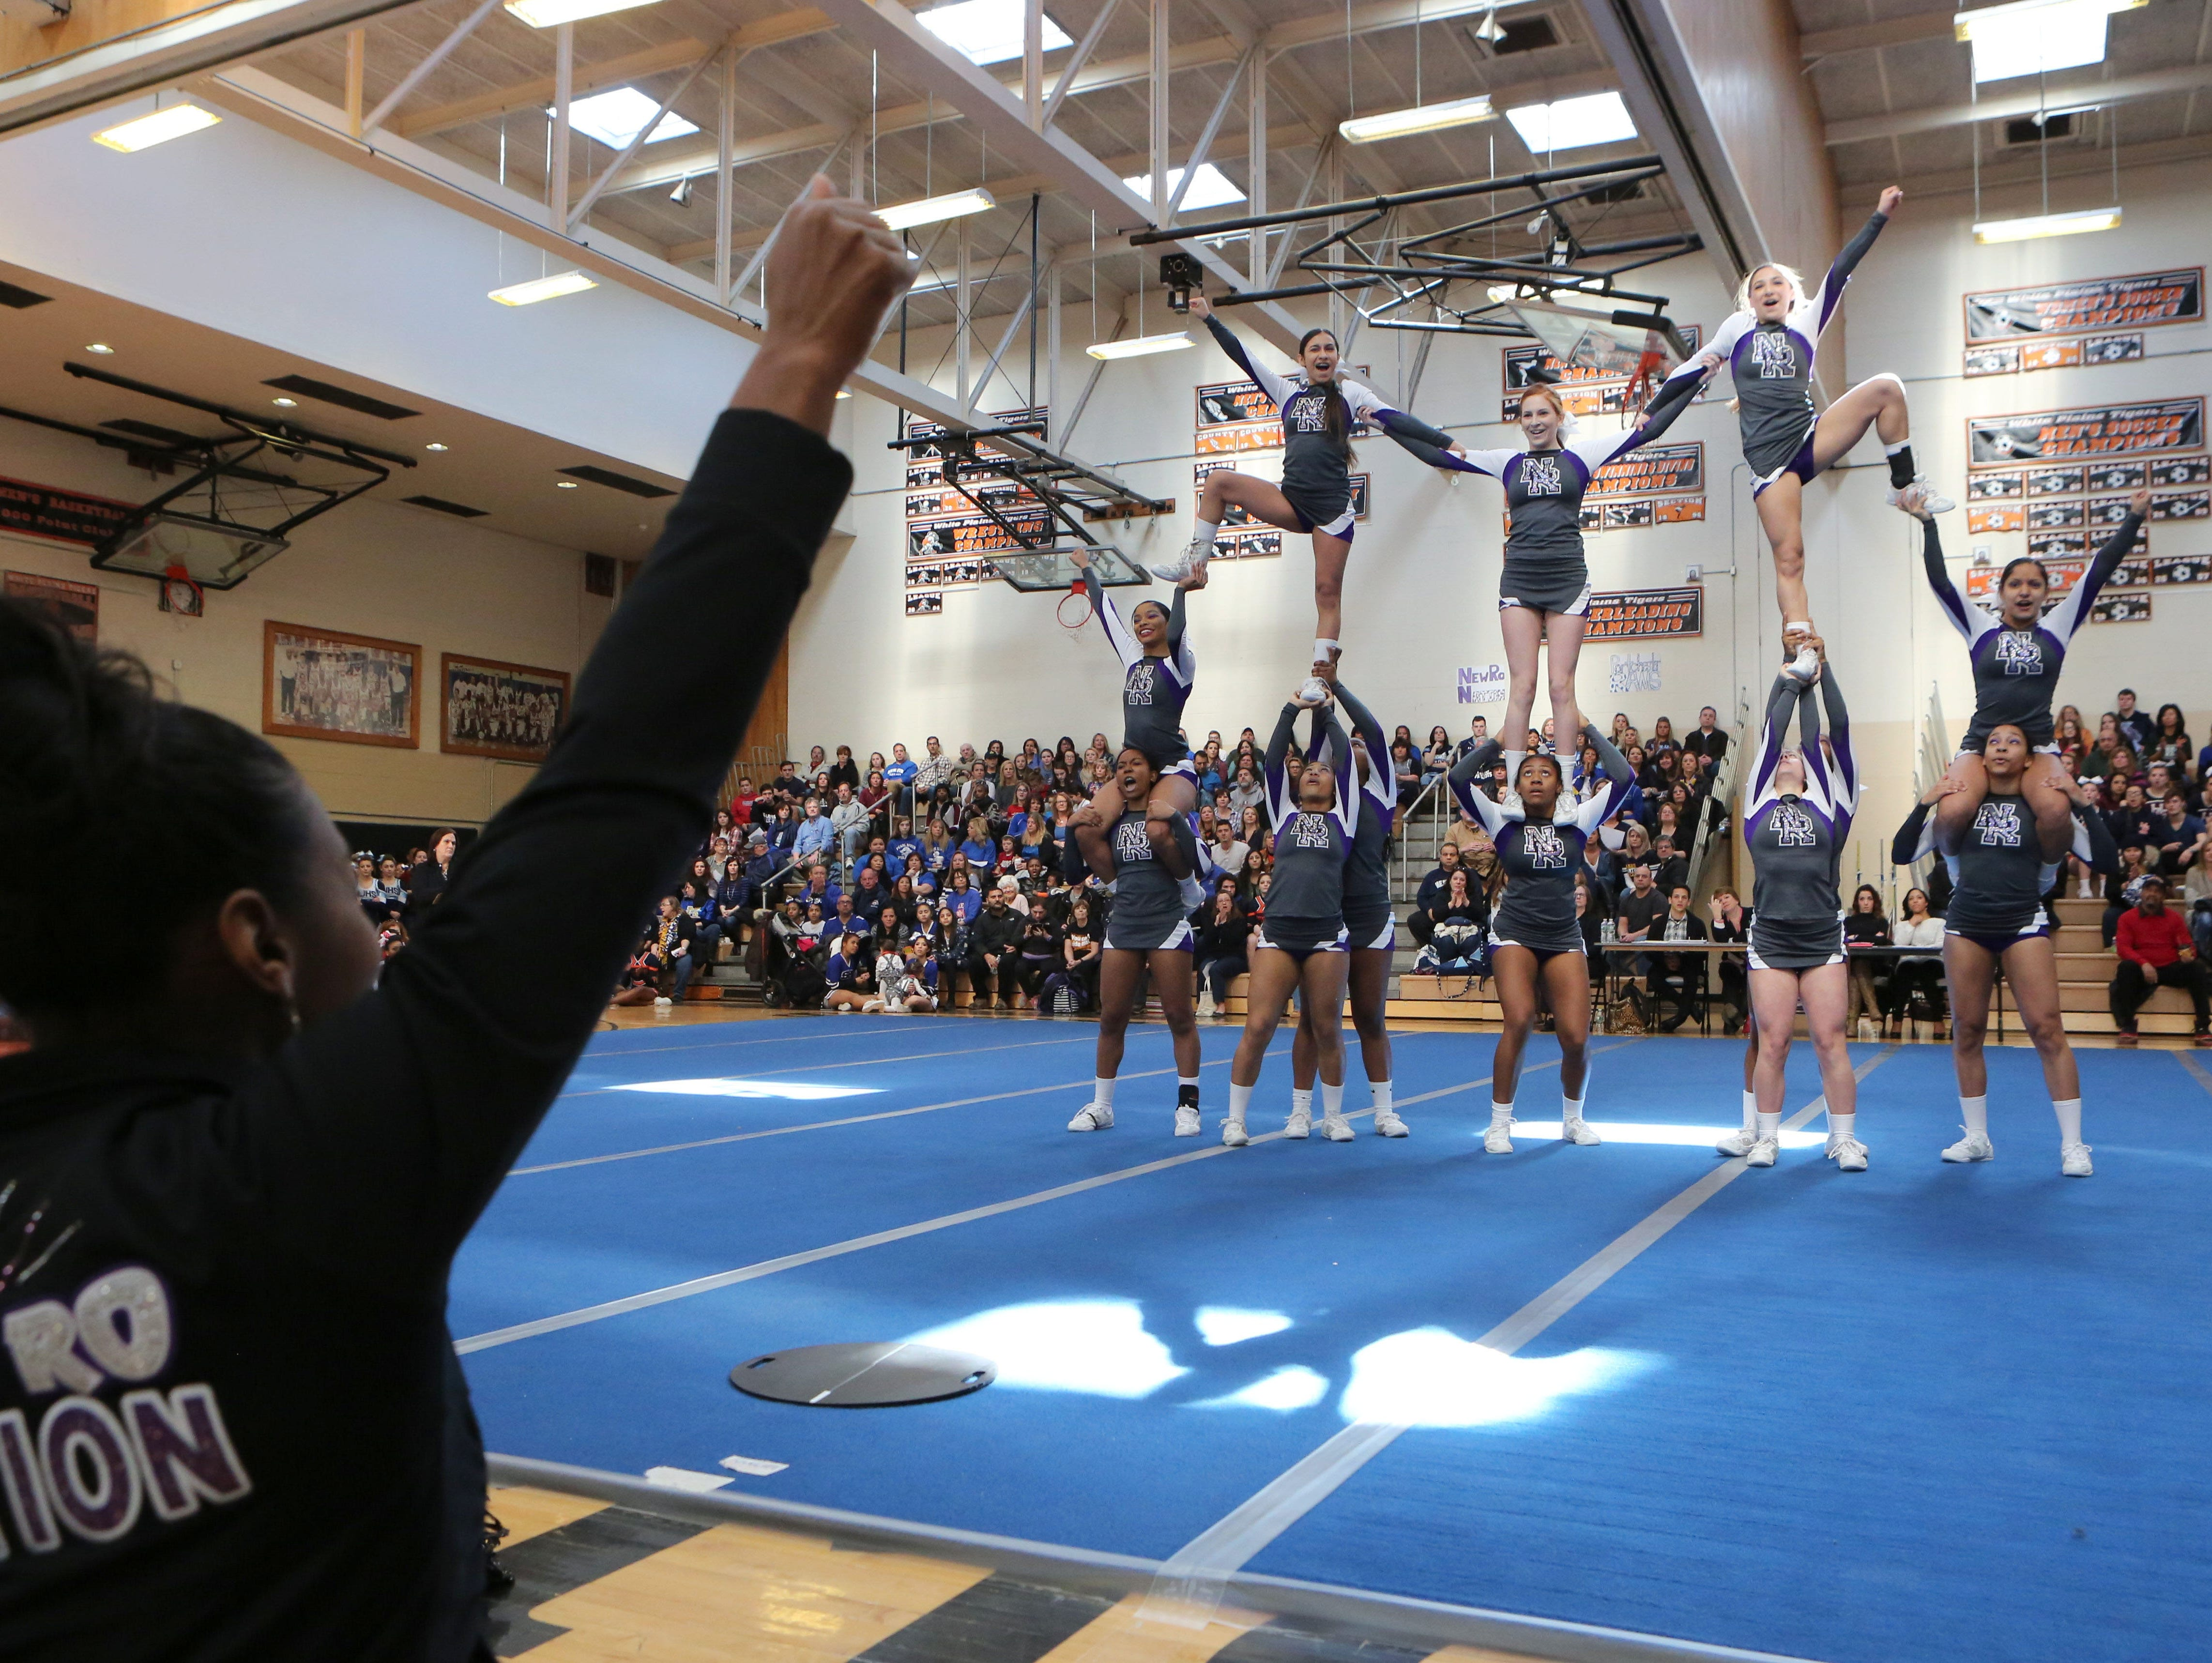 New Rochelle High School cheerleaders perform during the Section One Cheerleading Finals 2016 at White Plains High School, Feb. 27, 2016.